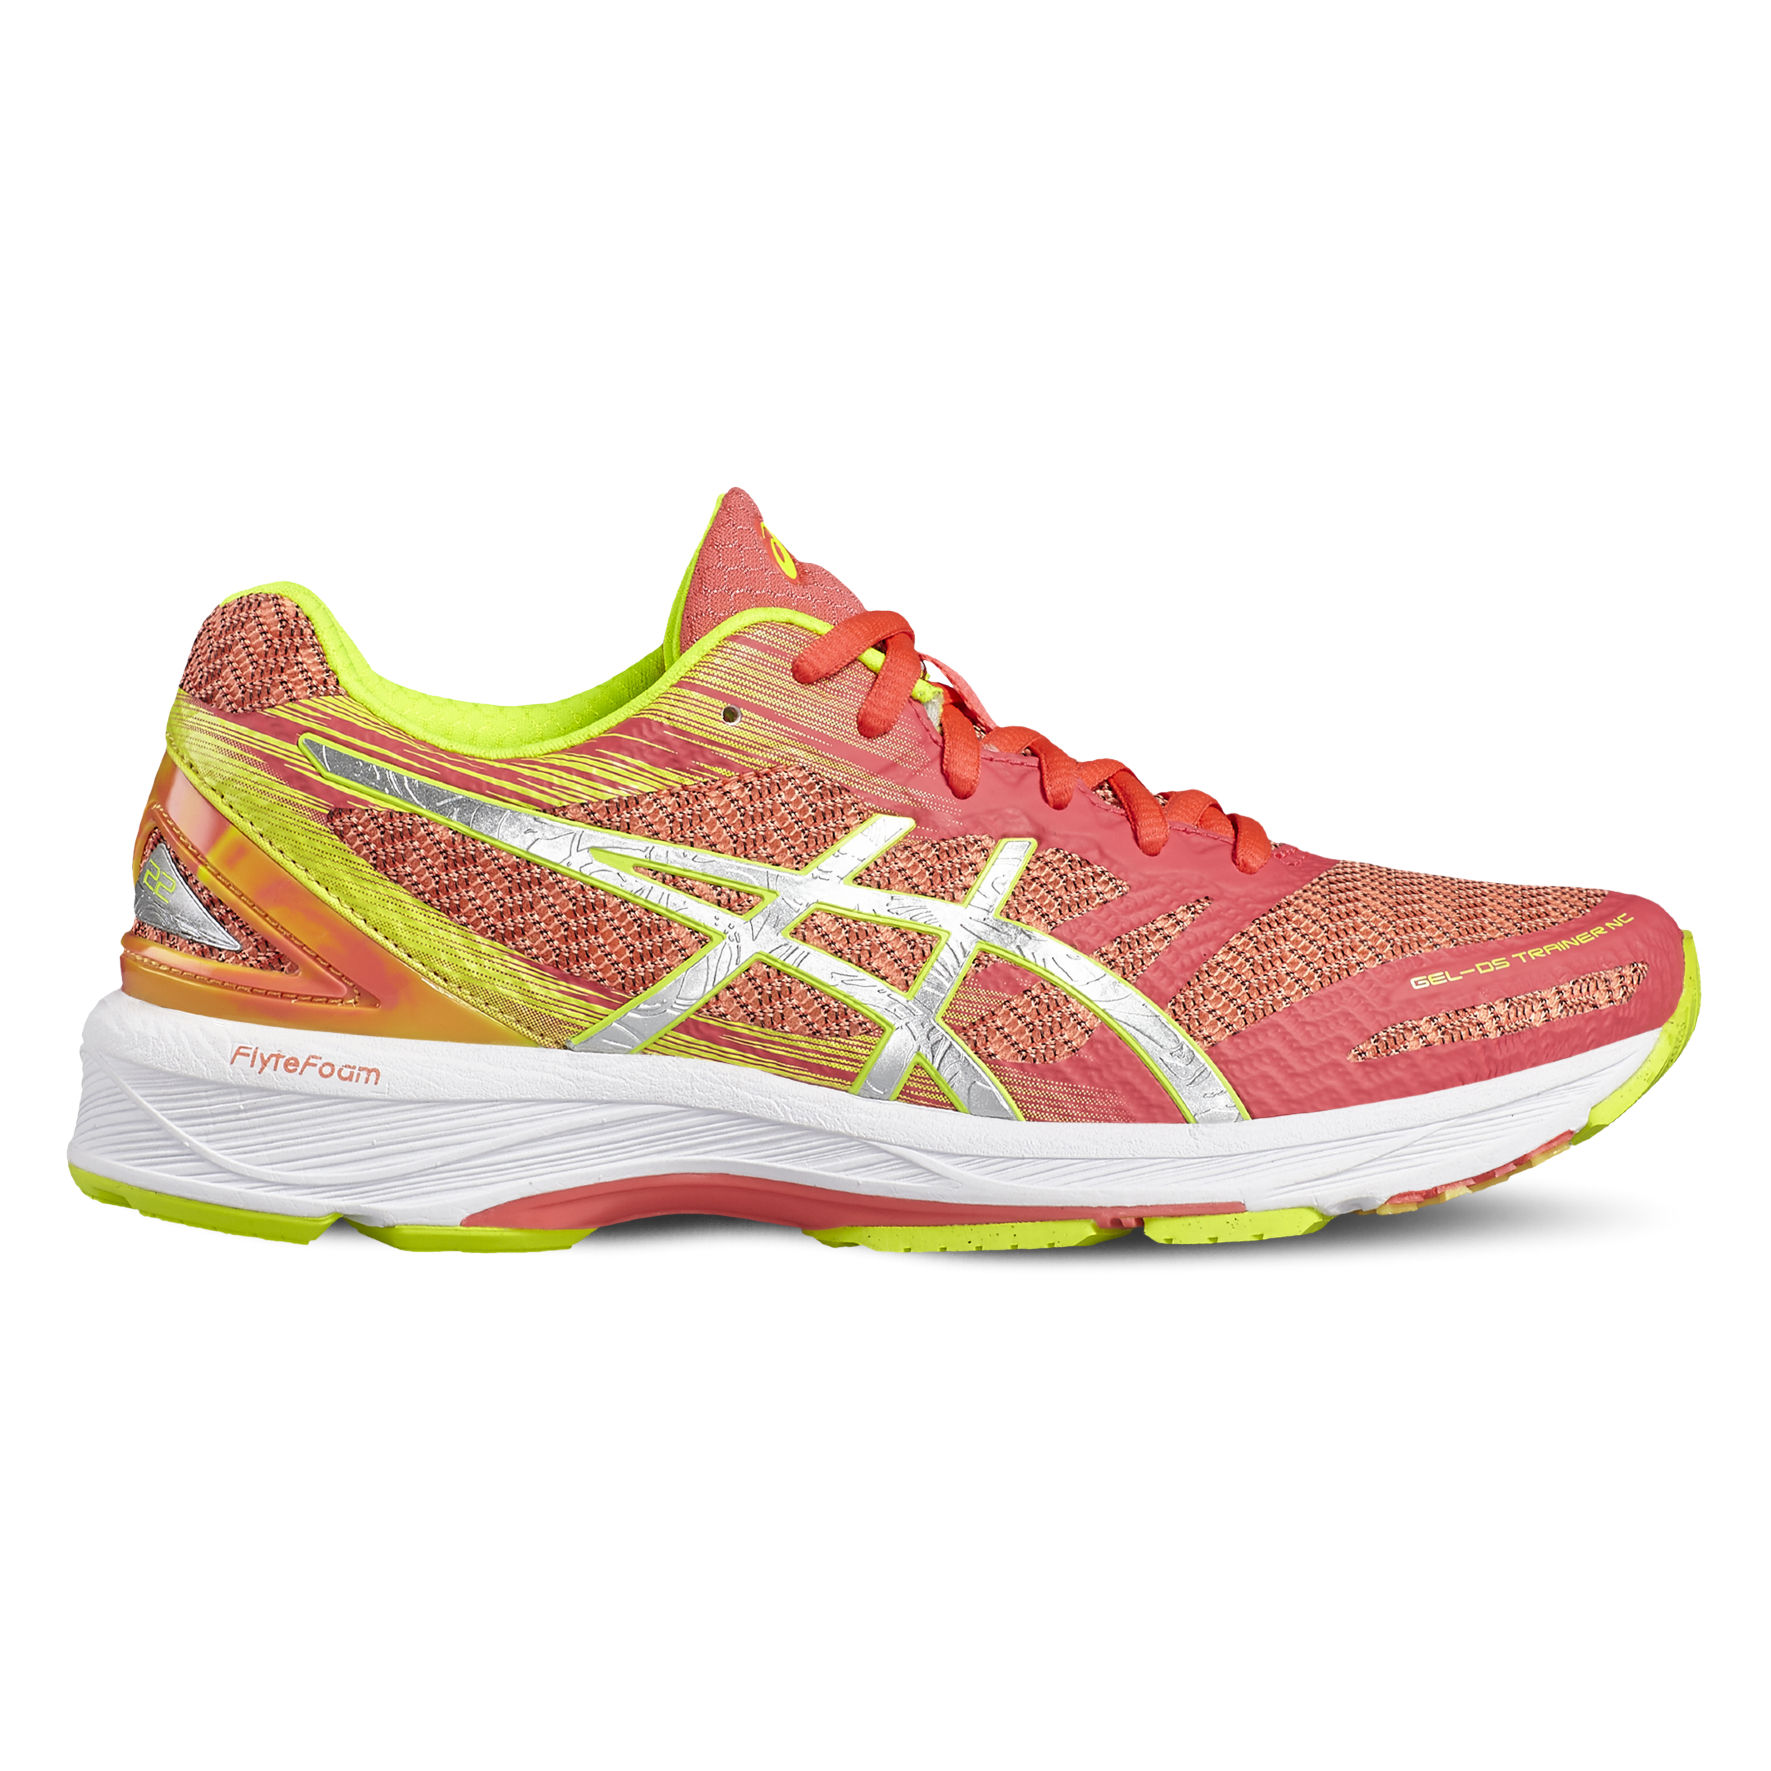 Asics Lady DS Trainer 22 NC in Pink Gelb